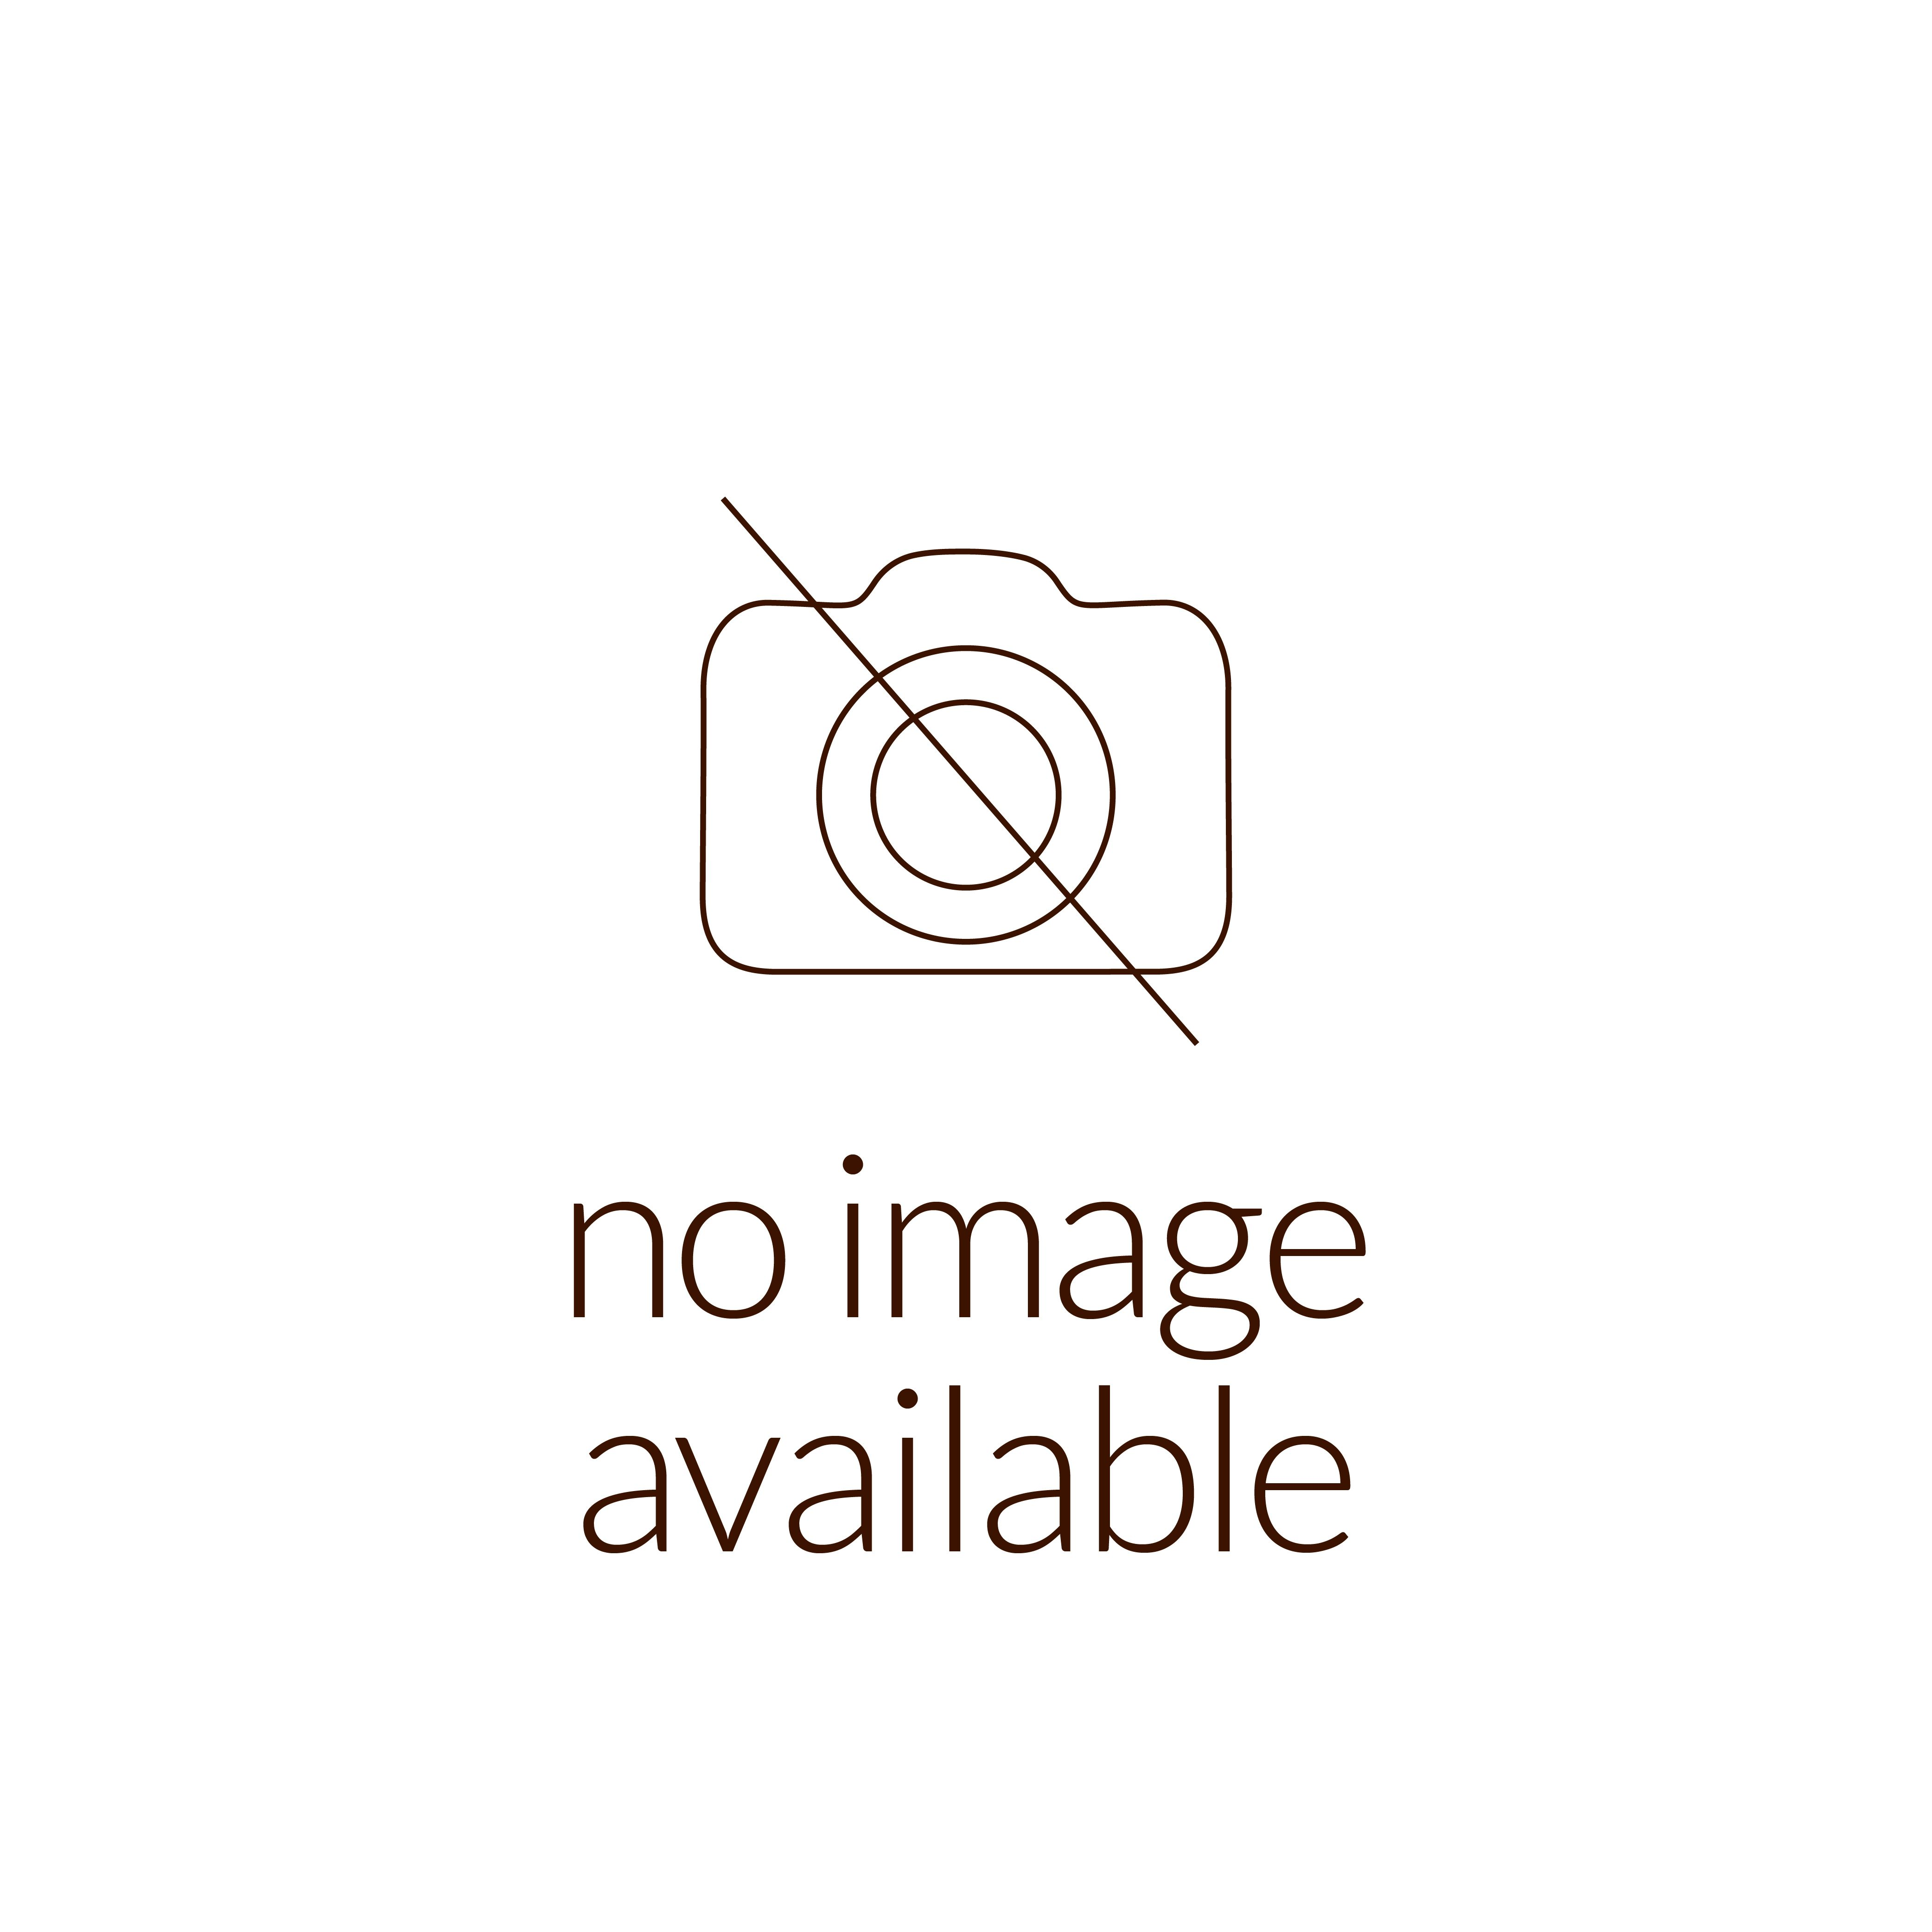 State Medal, Menorah, Holy Land Ancient Mosaics, Gold 9999, 38.7 mm, 1 oz. - Obverse